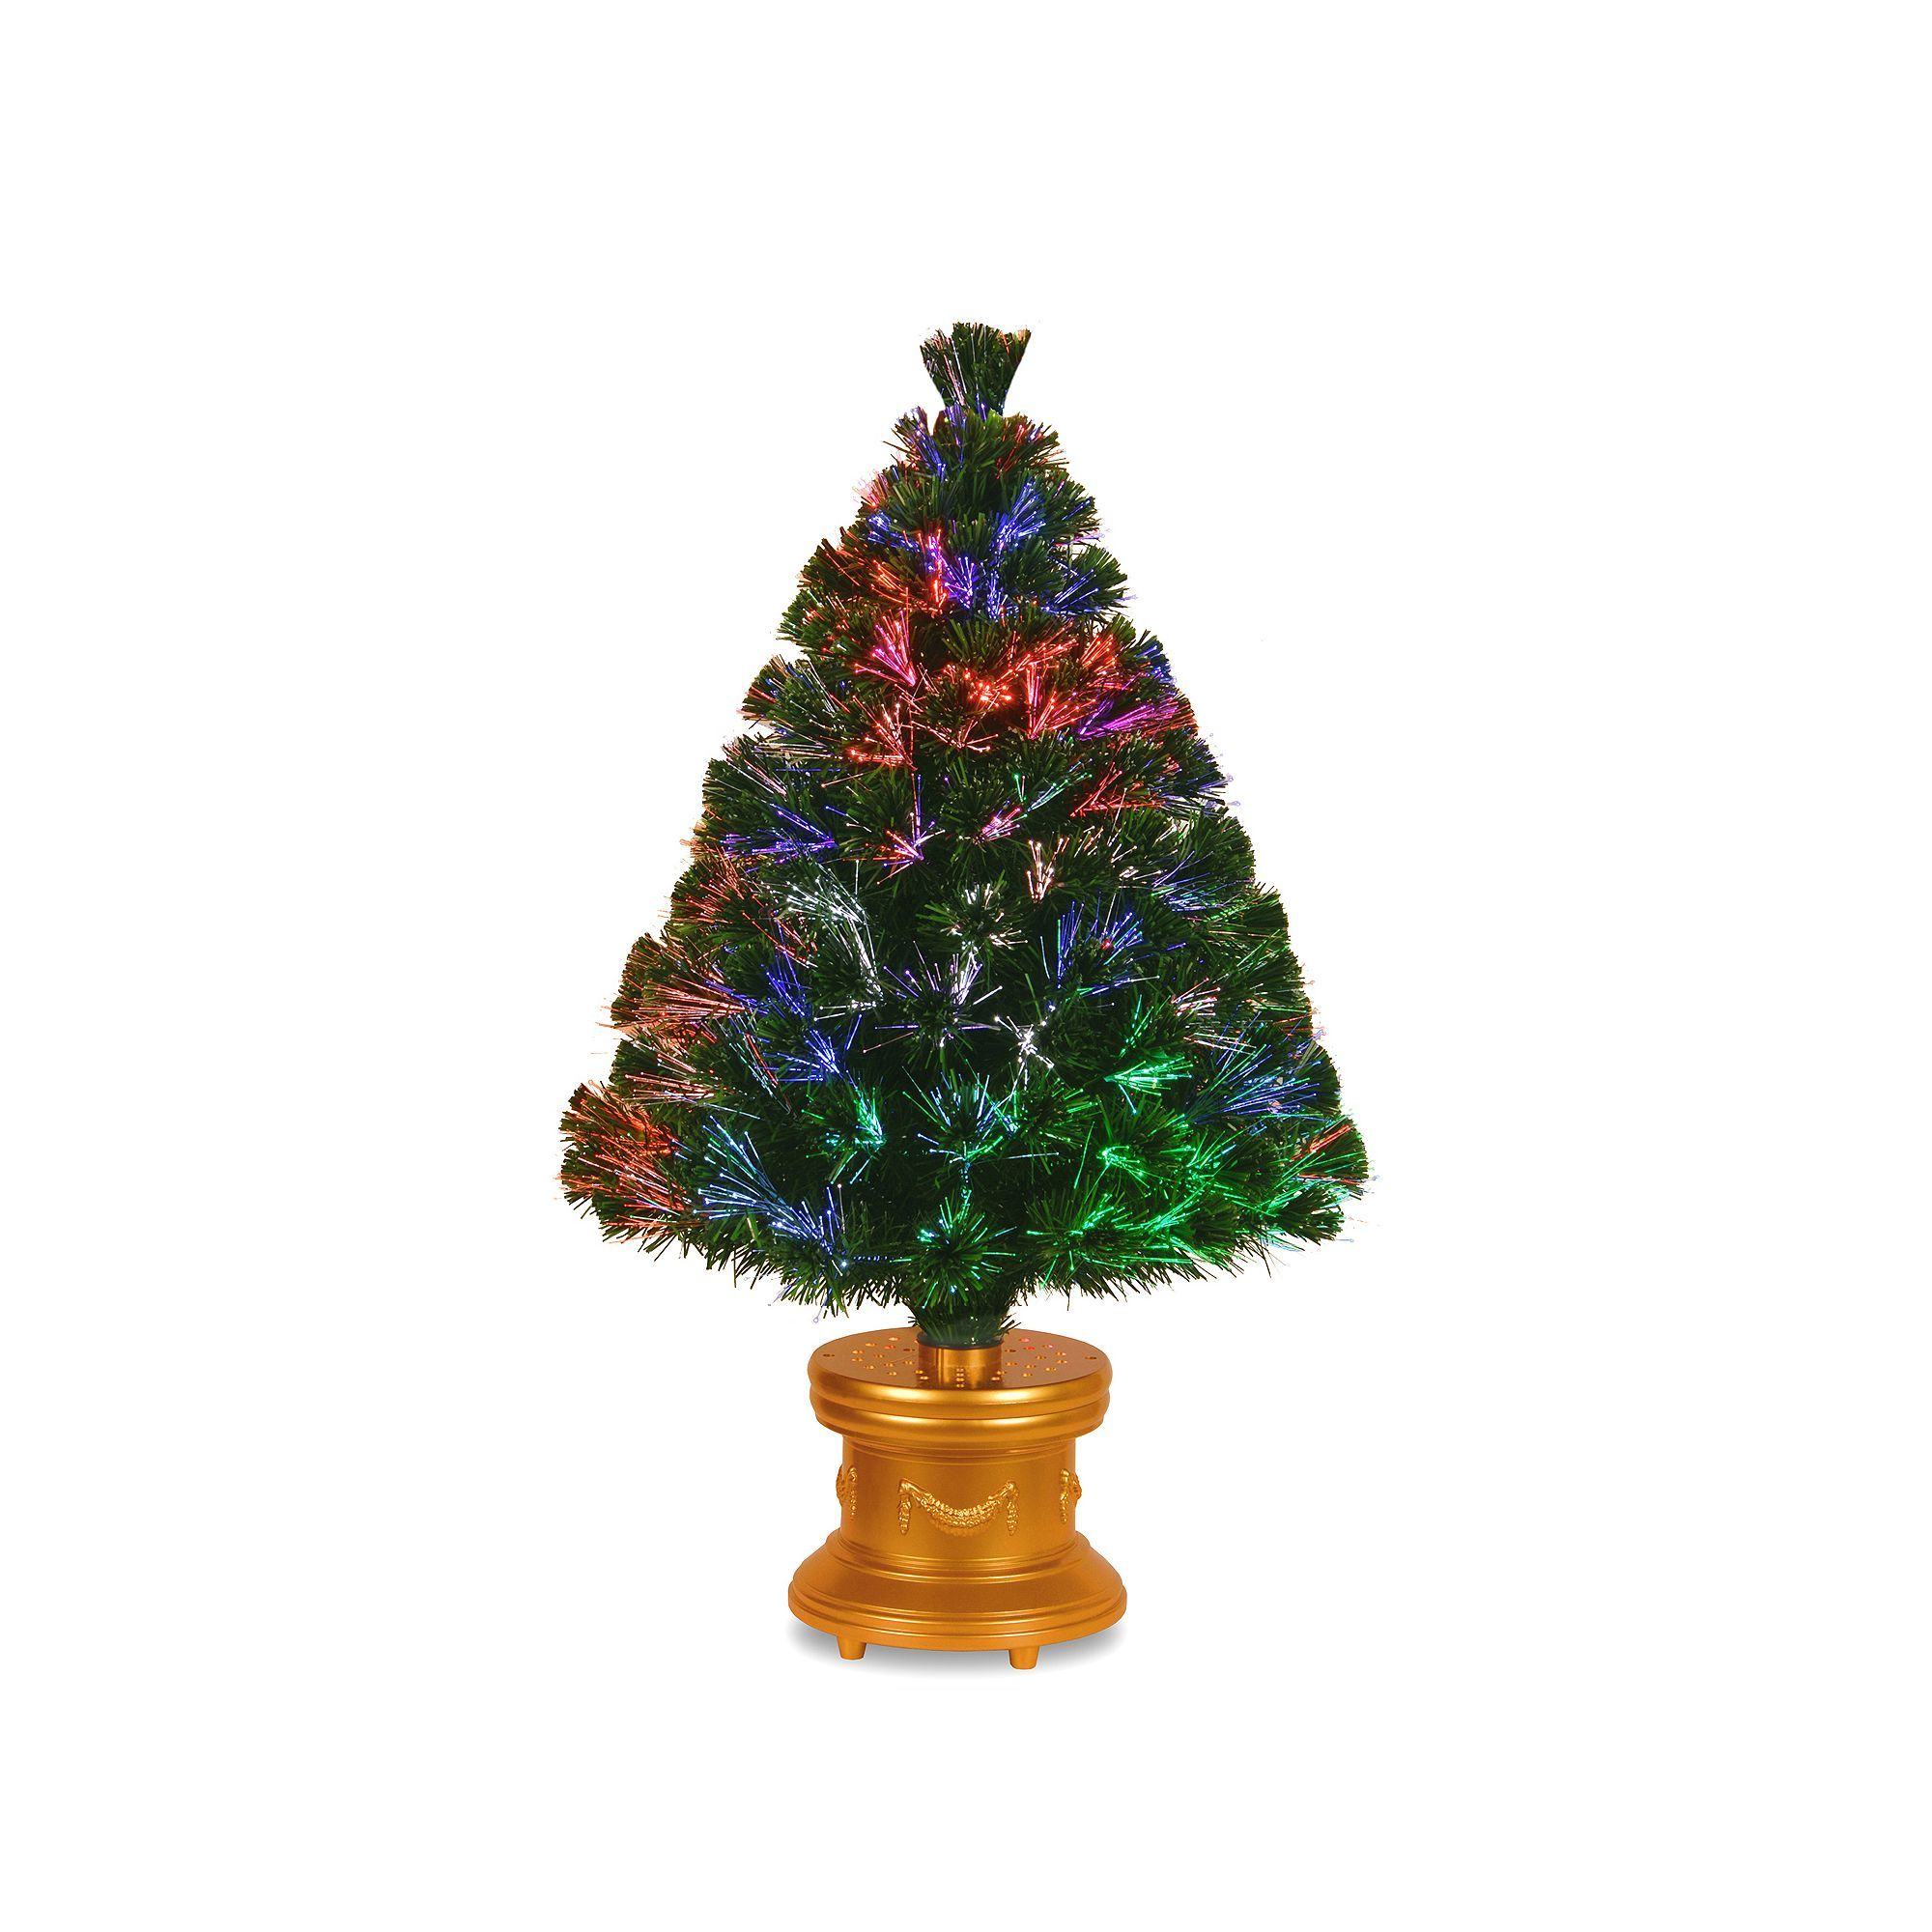 6f2428d44bc9 National Tree Company 36-in. Fiber Optic Evergreen Firework Artificial  Christmas Tree